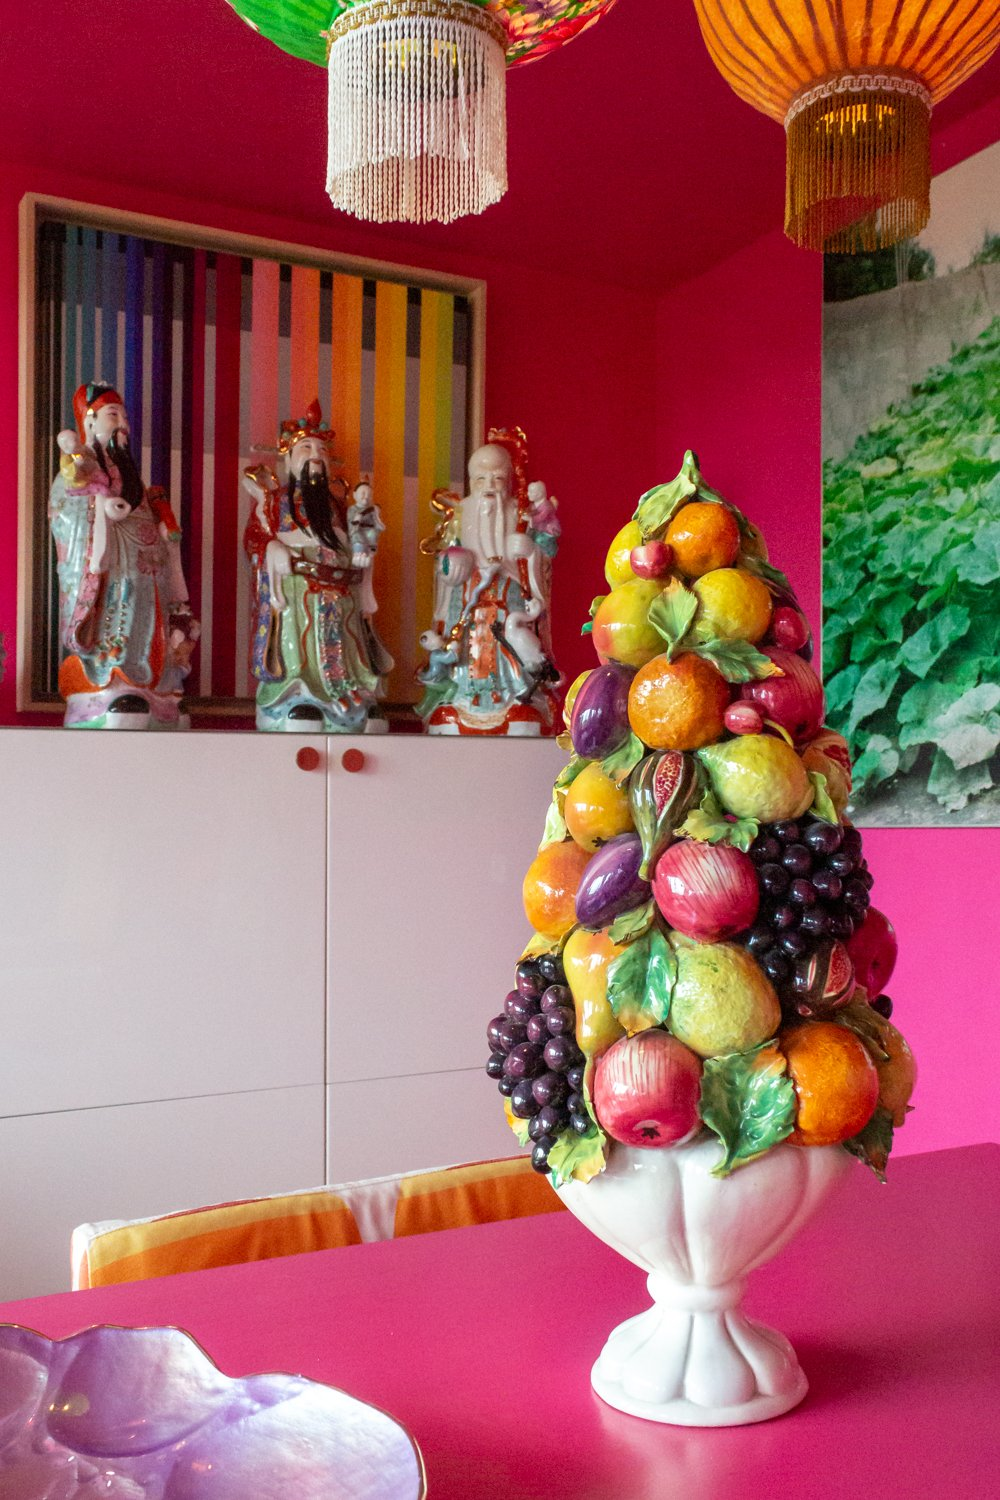 Ceramic fruit pyramid - you want it, don't you? Buy it at INTERIORATOR BOUTIQUE